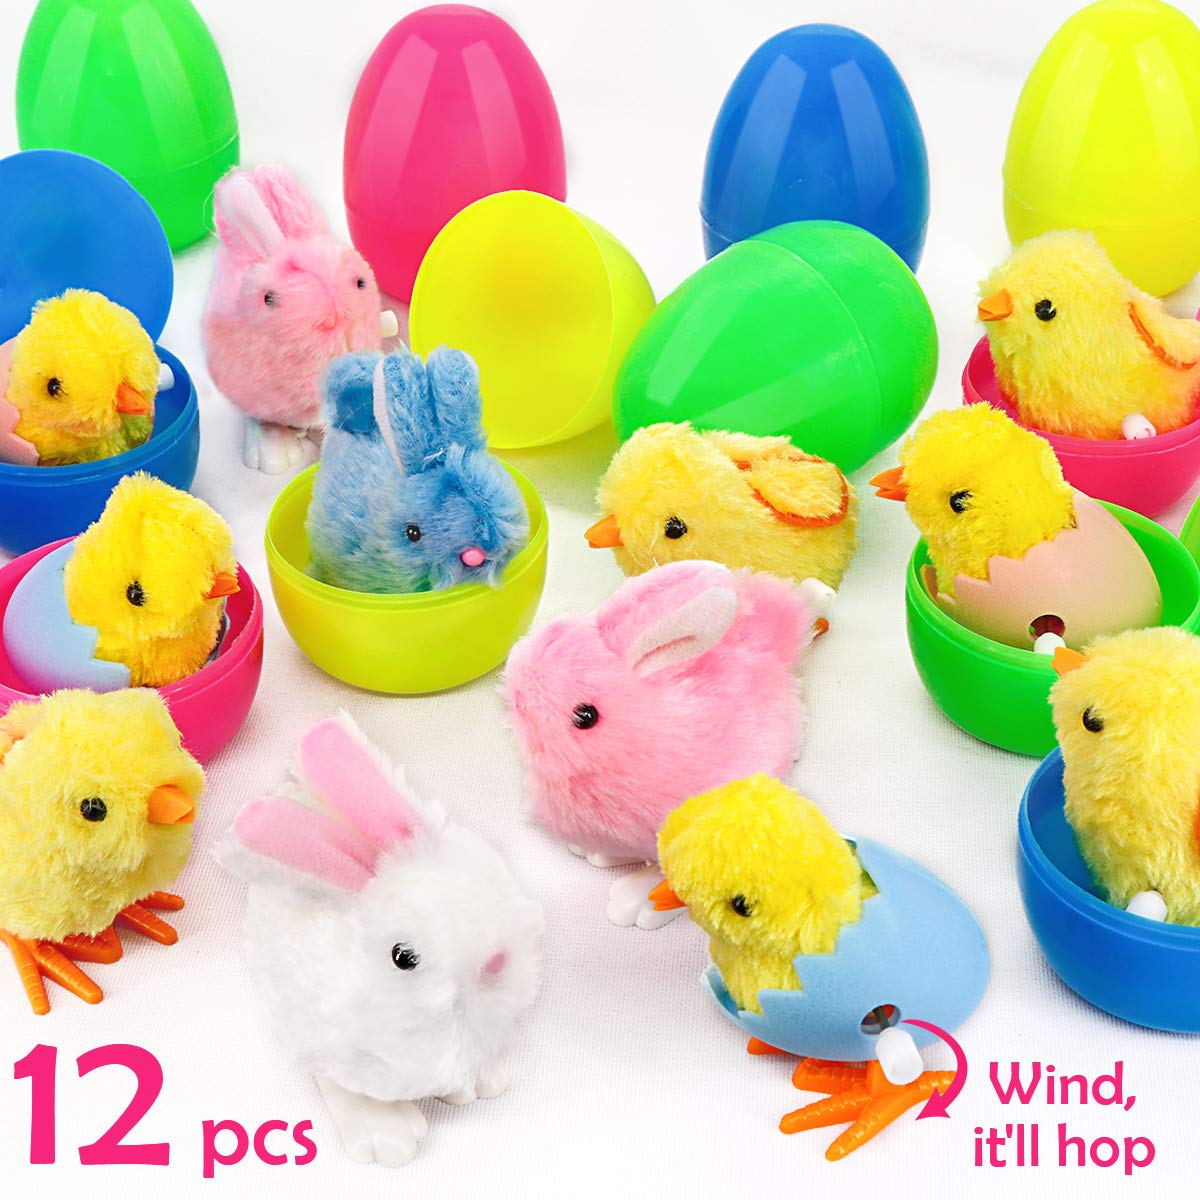 """Ivenf Plastic Easter Eggs Filled with Wind-Up Bunnies and Chicks Plush Toys 12 Pack, Surprise Prefilled Large 3-3/4"""" Easter Eggs Bulk for Kids, School Home Office Easter Decorations Party Supplies"""